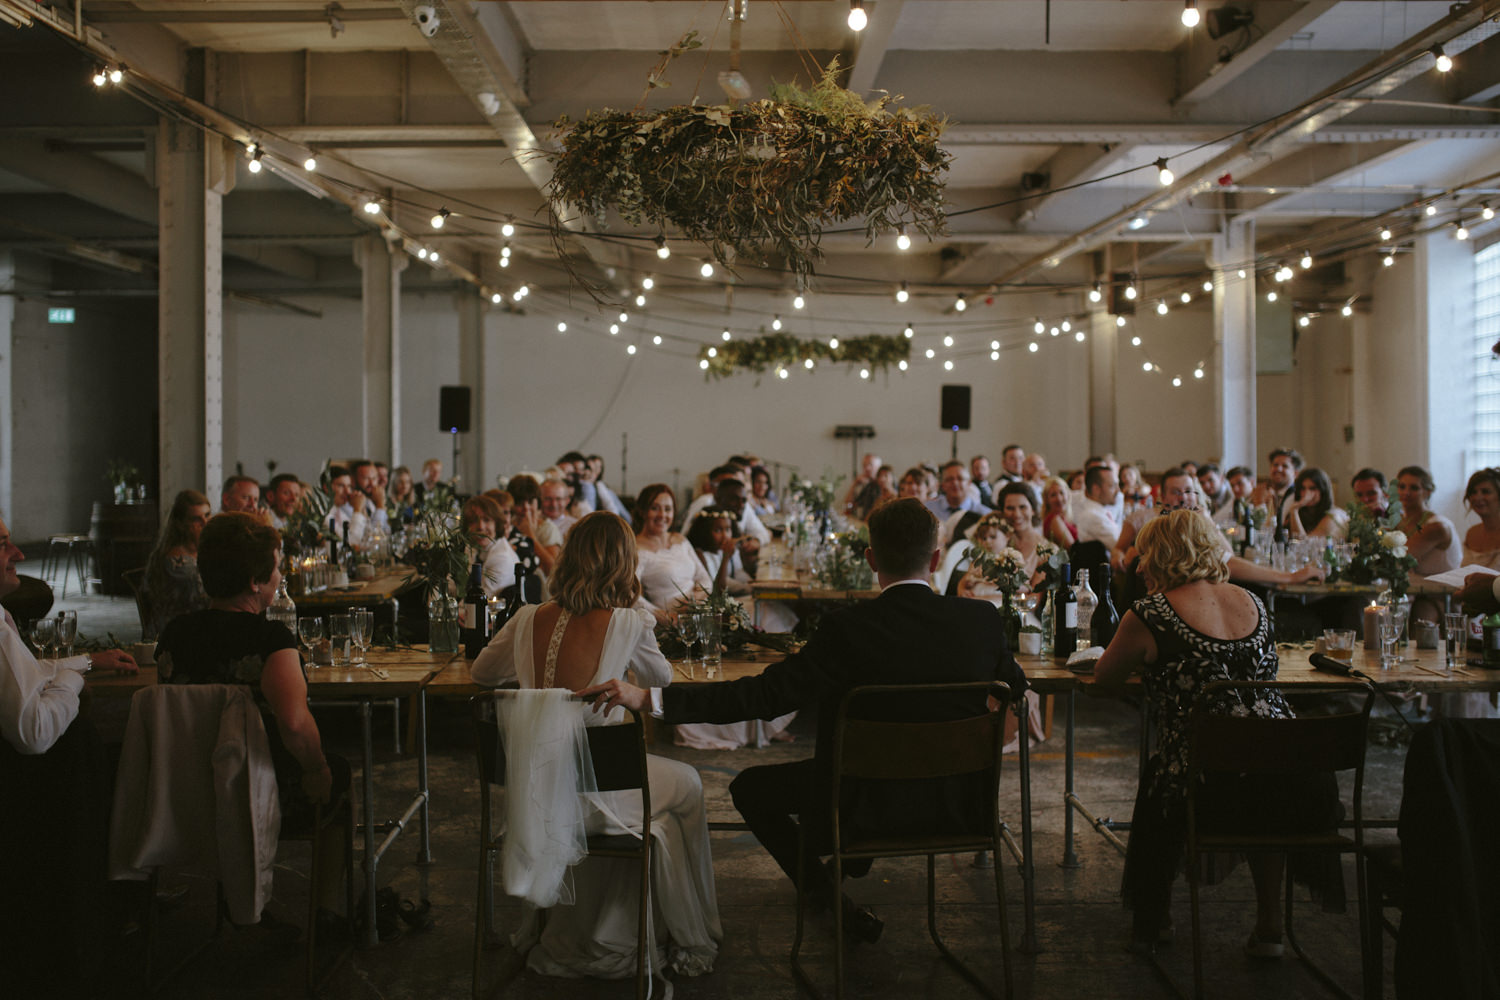 trafalgar-warehouse-sheffield-wedding-92.jpg